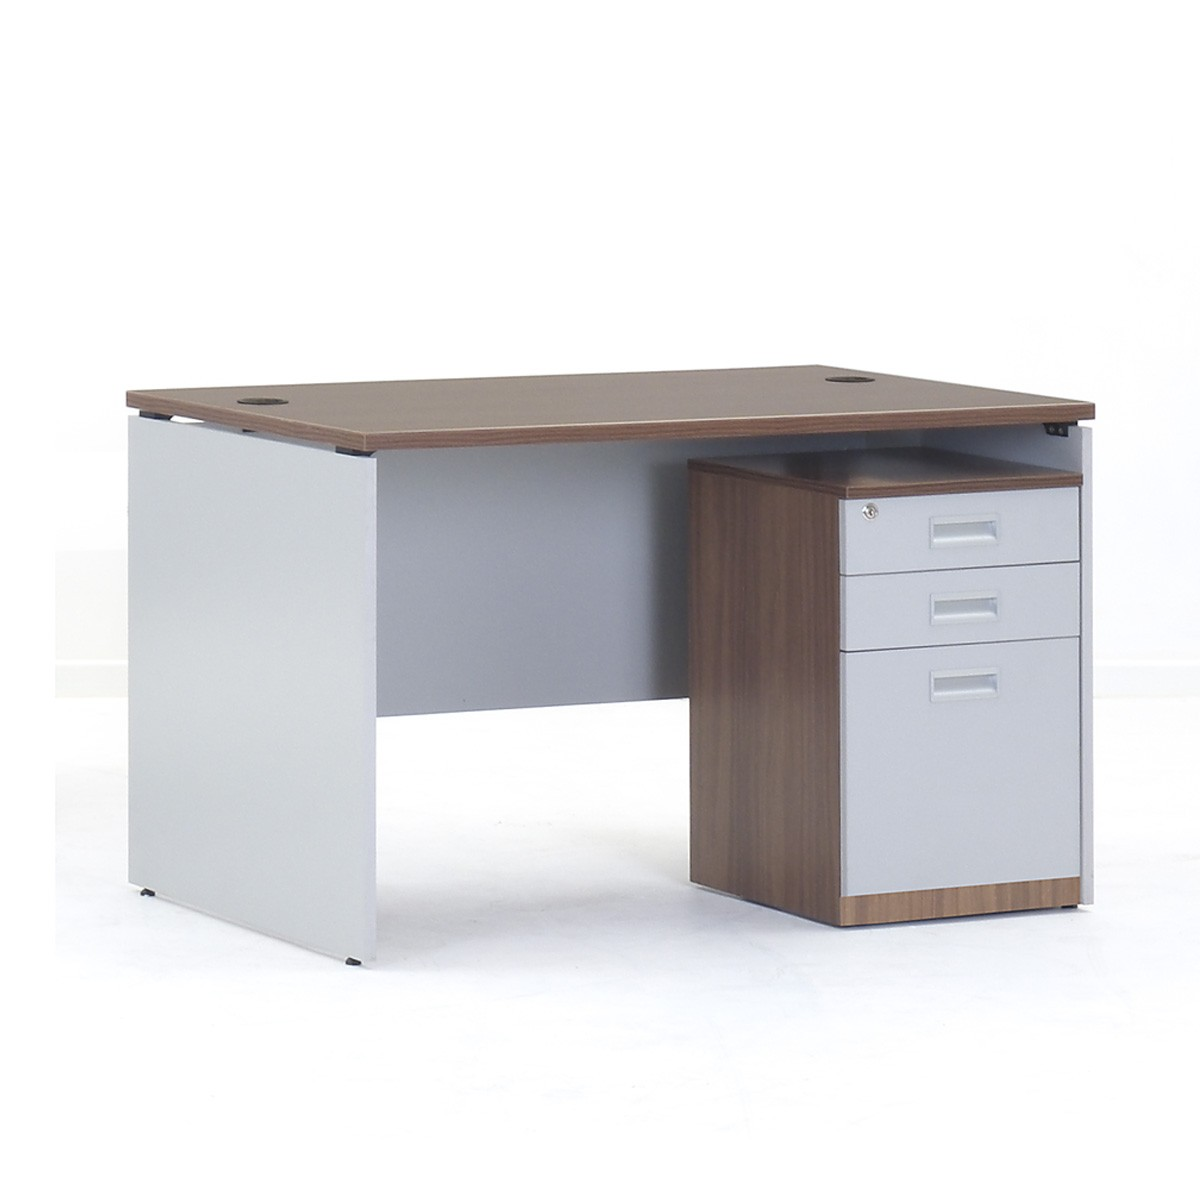 Versaline Table -1200mm with Pedestal